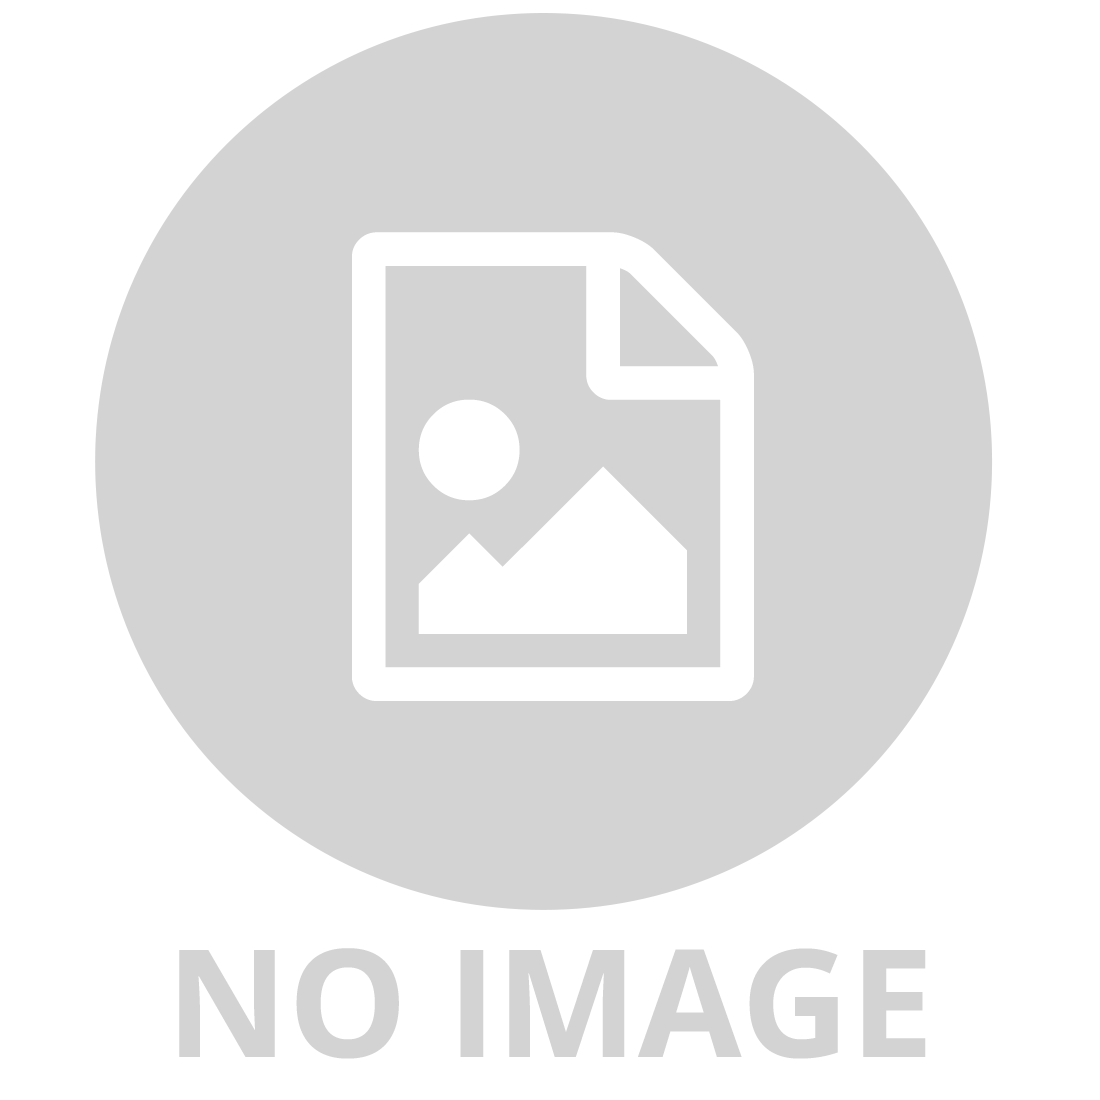 LAN101105 Graphite Wall Lights